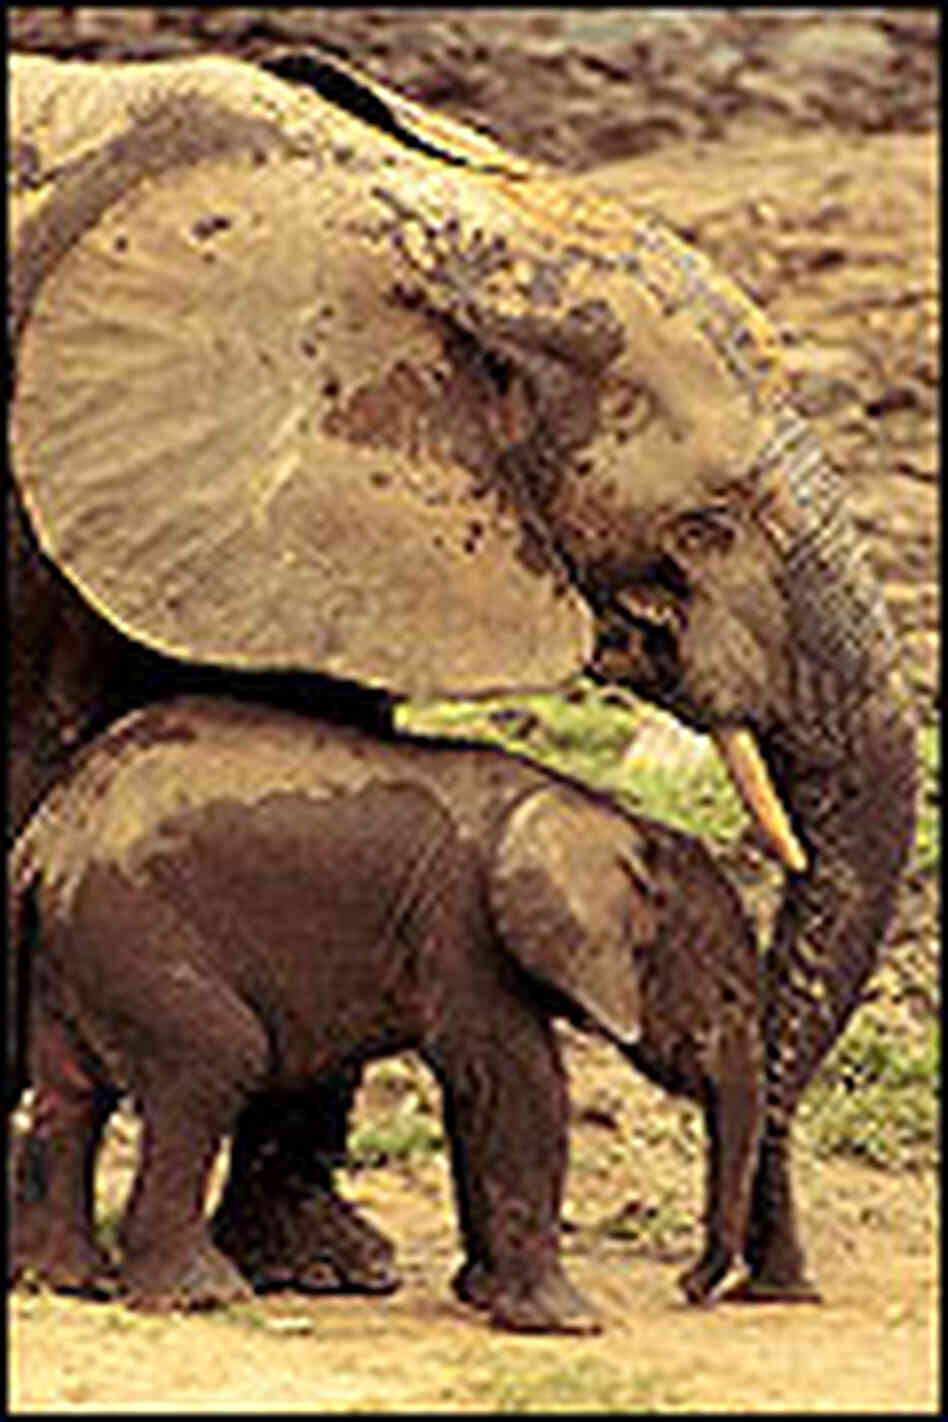 An adult and child elephant at the forest clearing.